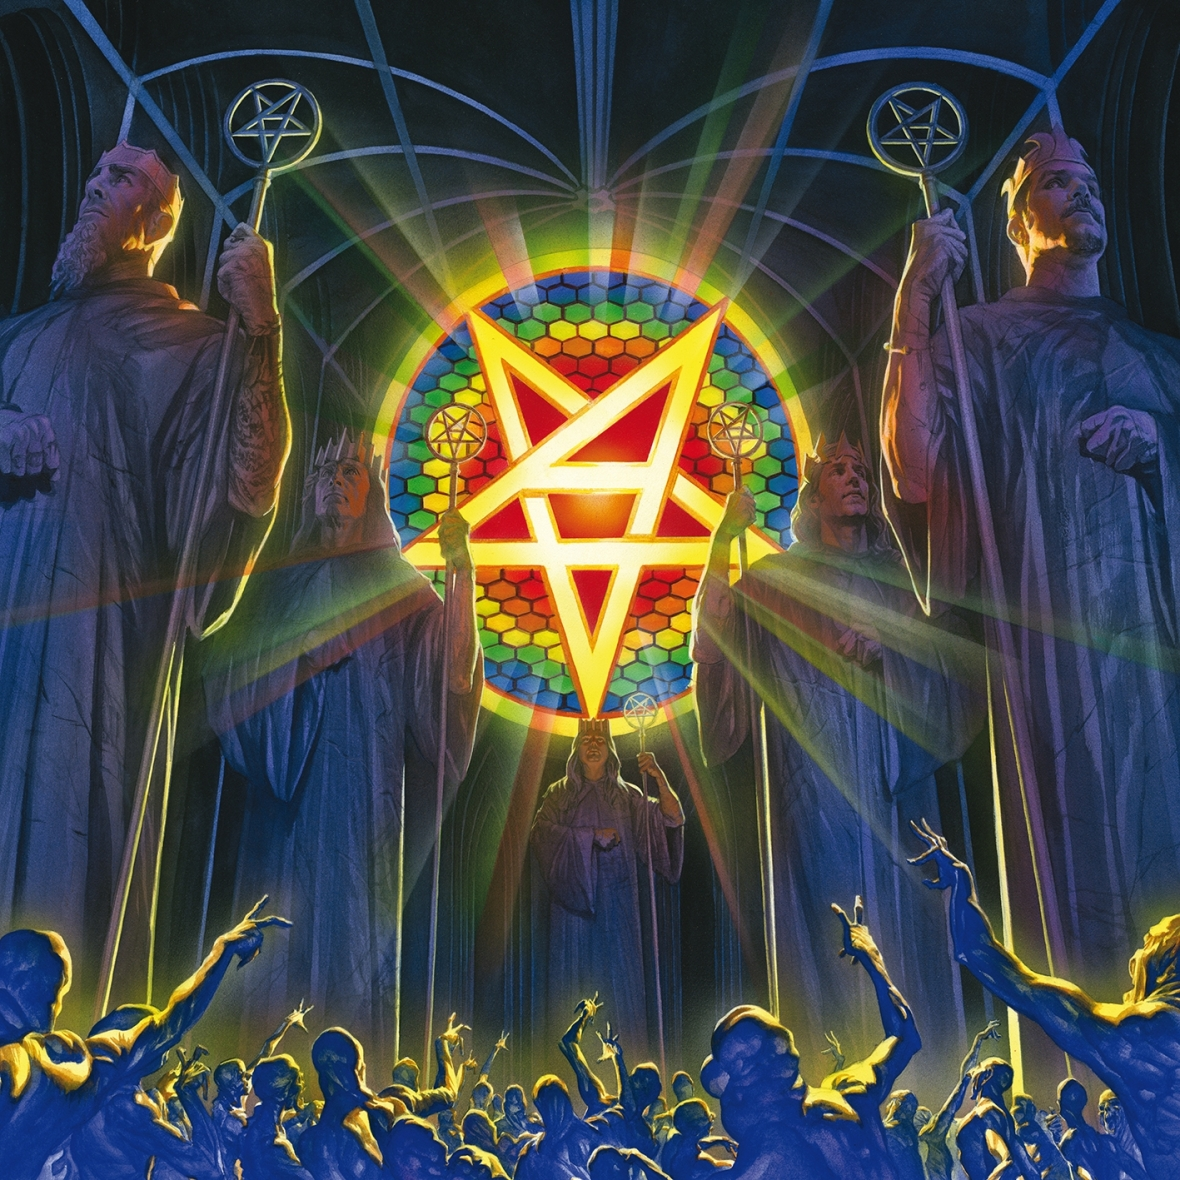 Anthrax - For All Kings - Artwork.jpg